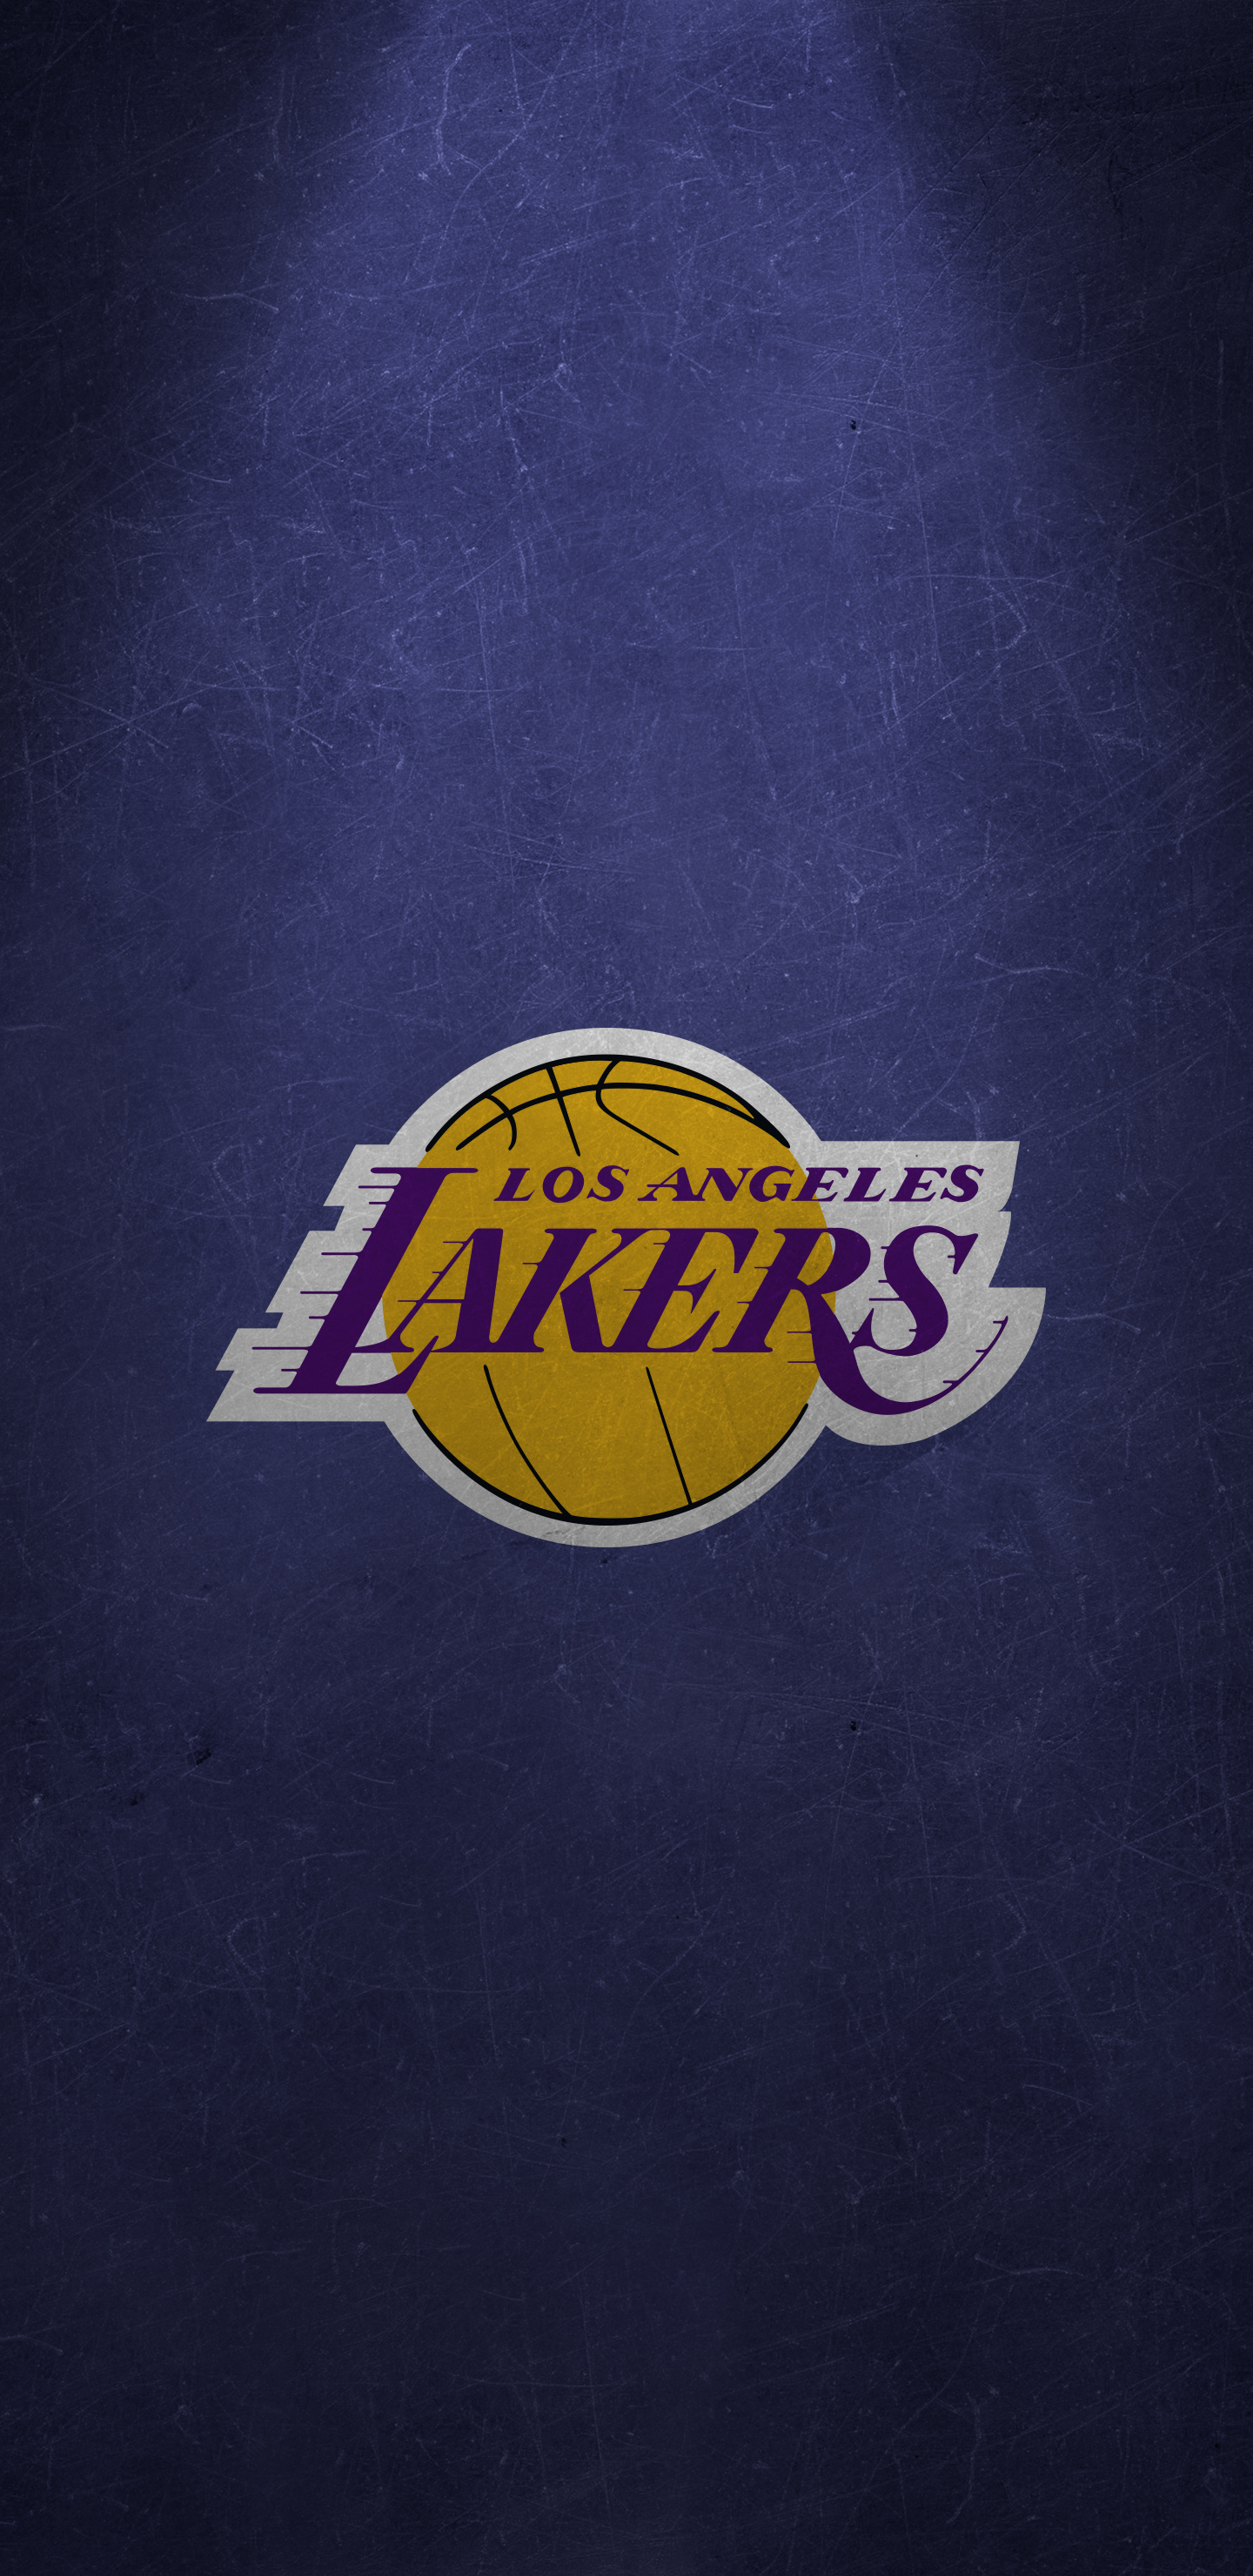 Escudo Los Angeles Lakers